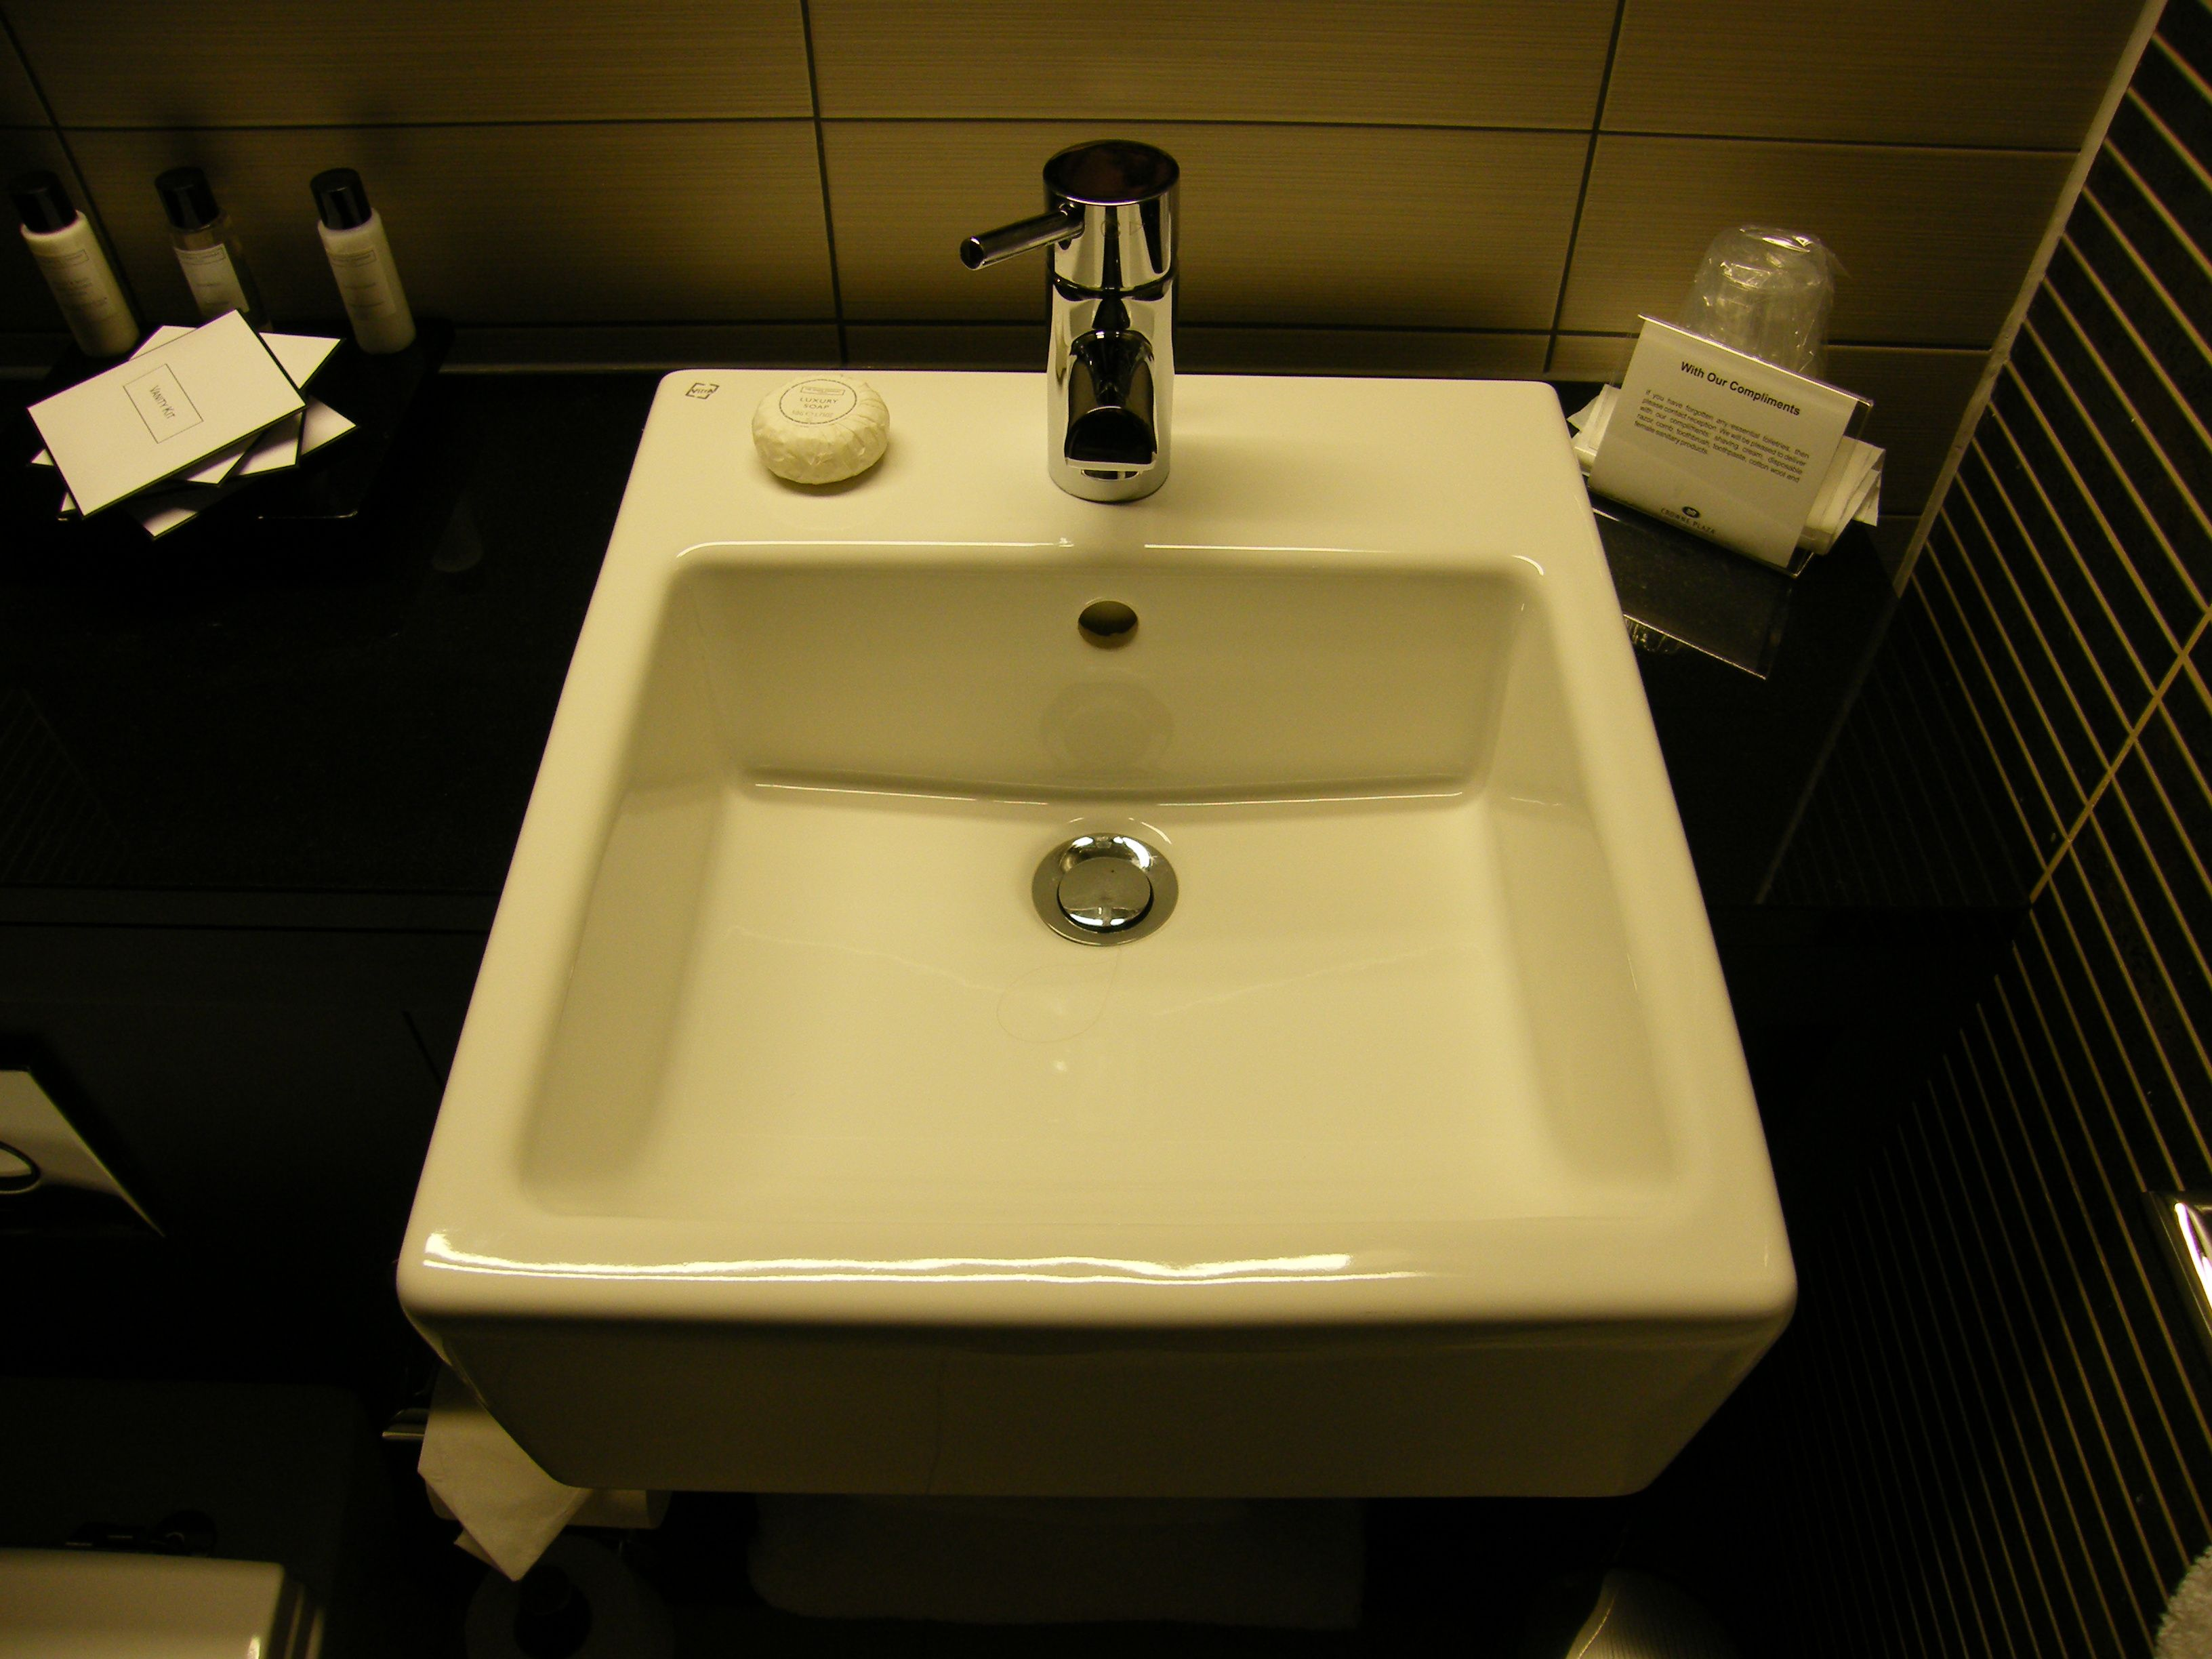 The wonderful Crowne Plaza Hotel in Birmingham, upscale yes, real ID, no! Upscale 4 star hotel, Hyatt Regency is somewhat higher up, though! Our Bathroom! 2008, newly renovated! Enjoy! - http://www.gucciwealth.com/the-wonderful-crowne-plaza-hotel-in-birmingham-upscale-yes-real-id-no-upscale-4-star-hotel-hyatt-regency-is-somewhat-higher-up-though-our-bathroom-2008-newly-renovated-enjoy/